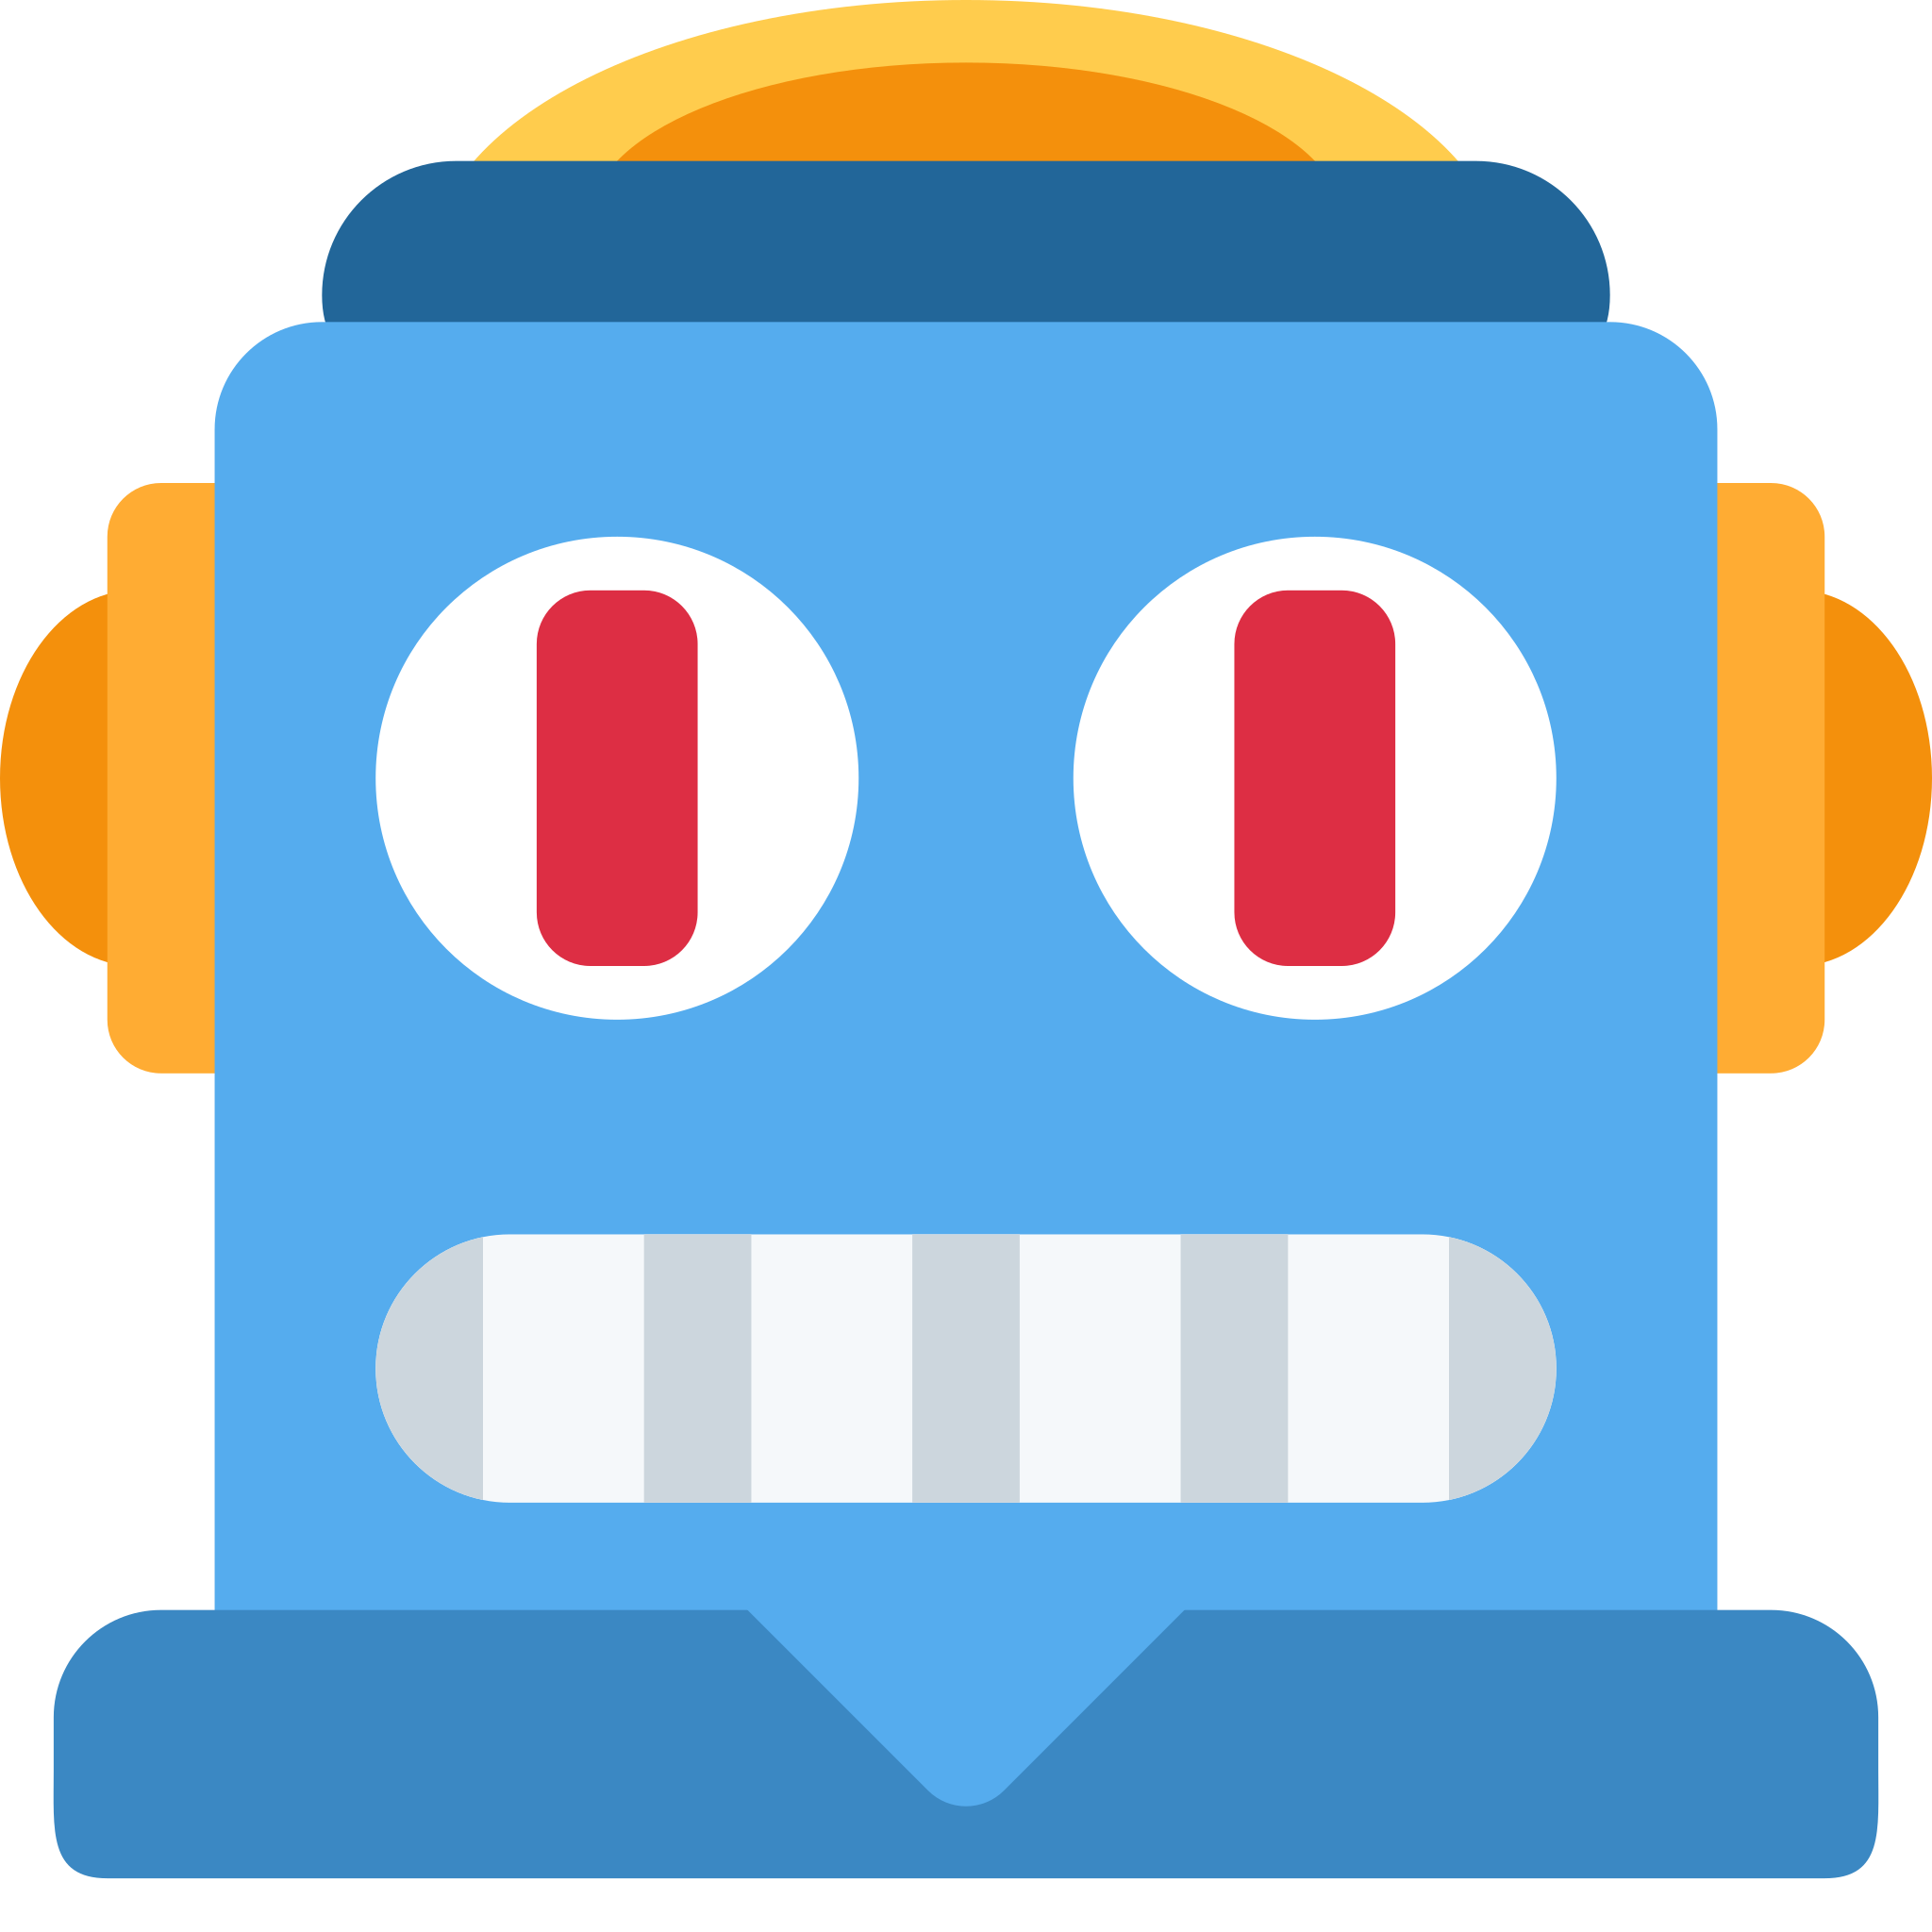 Combat Icons Twitter Robot Computer Android Emoji PNG Image